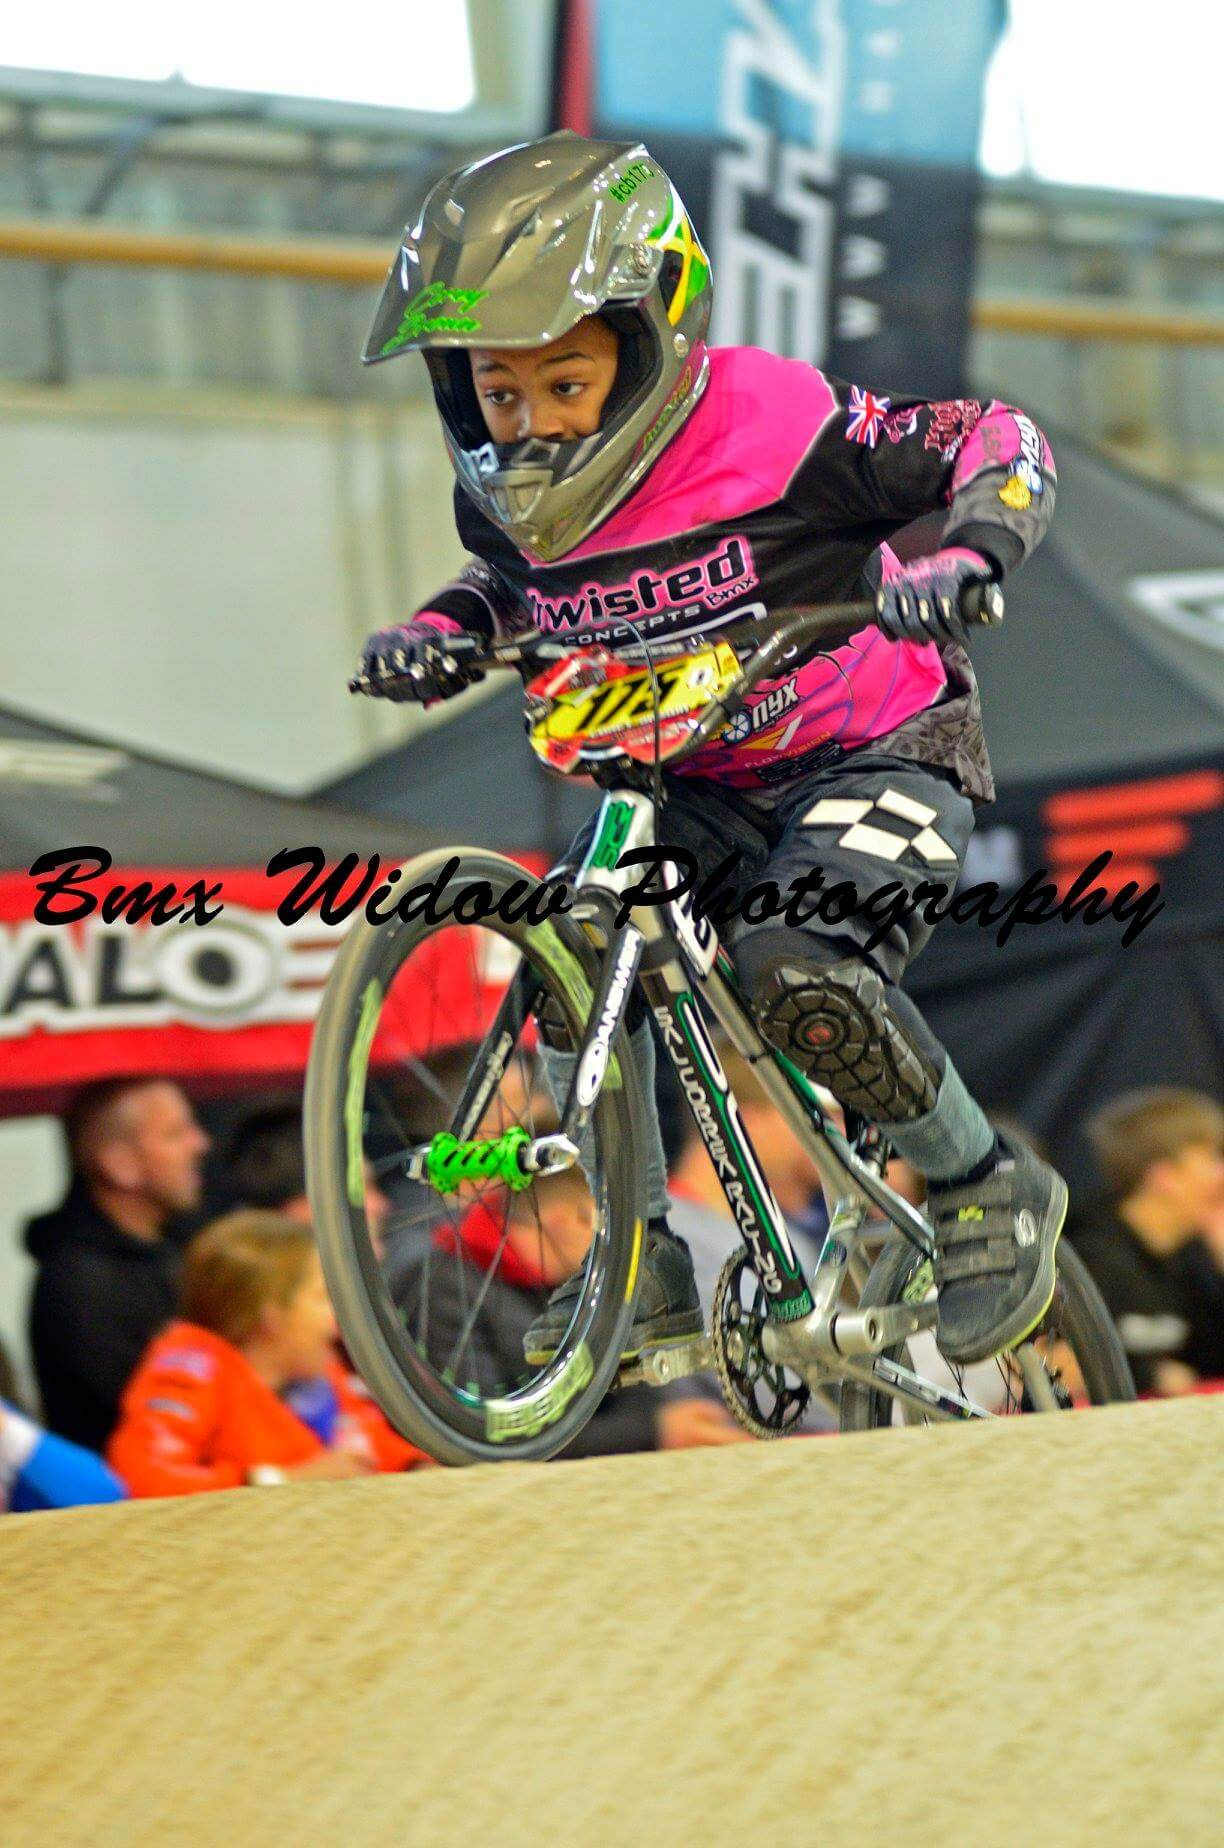 Twisted Concepts - Manchester - BMX Widow - i01